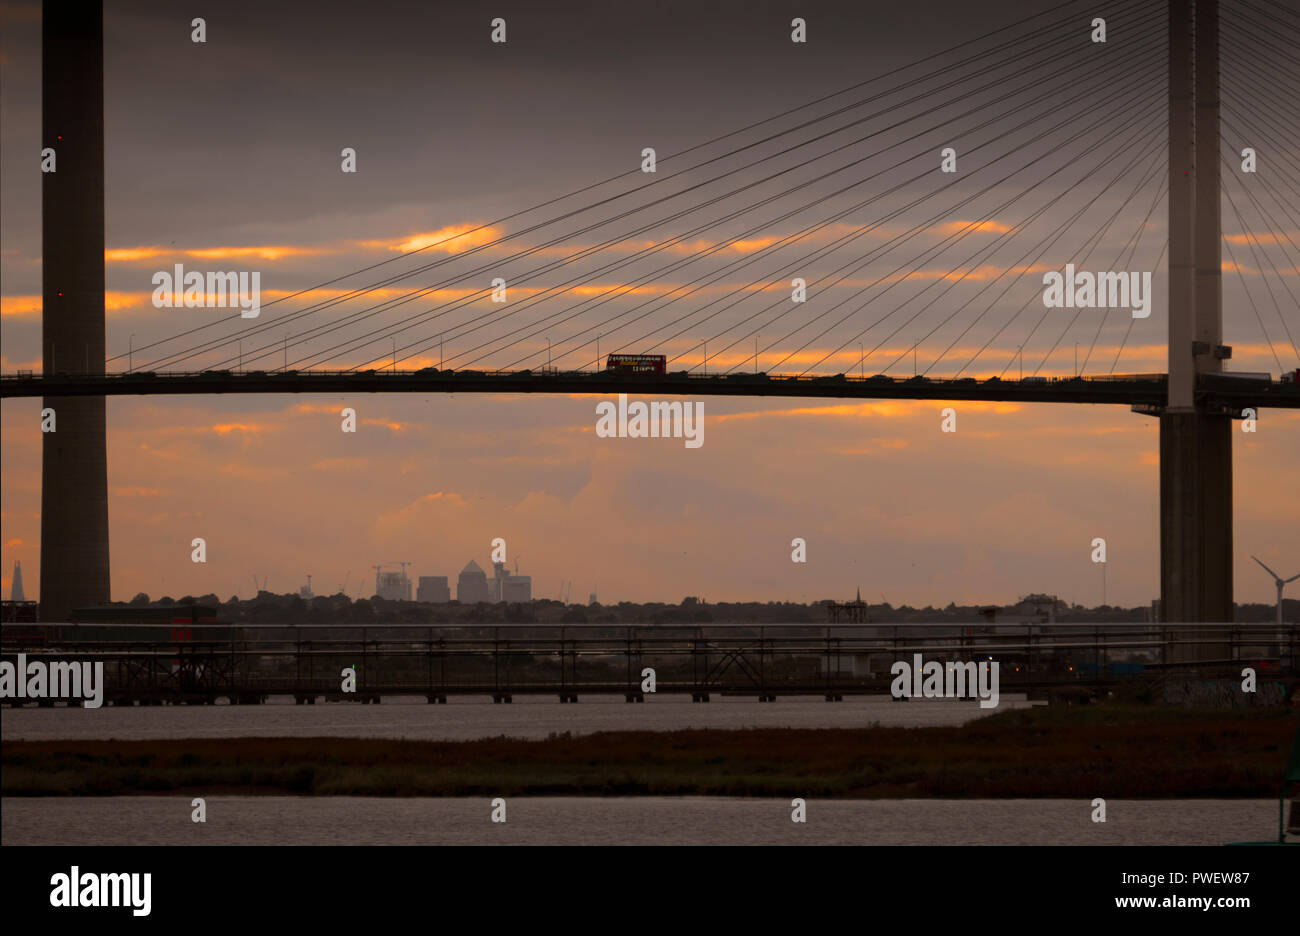 A London bus crosses the River Thames over the Dartford Crossing or Queen Elizabeth Bridge between Essex and Kent, England. - Stock Image